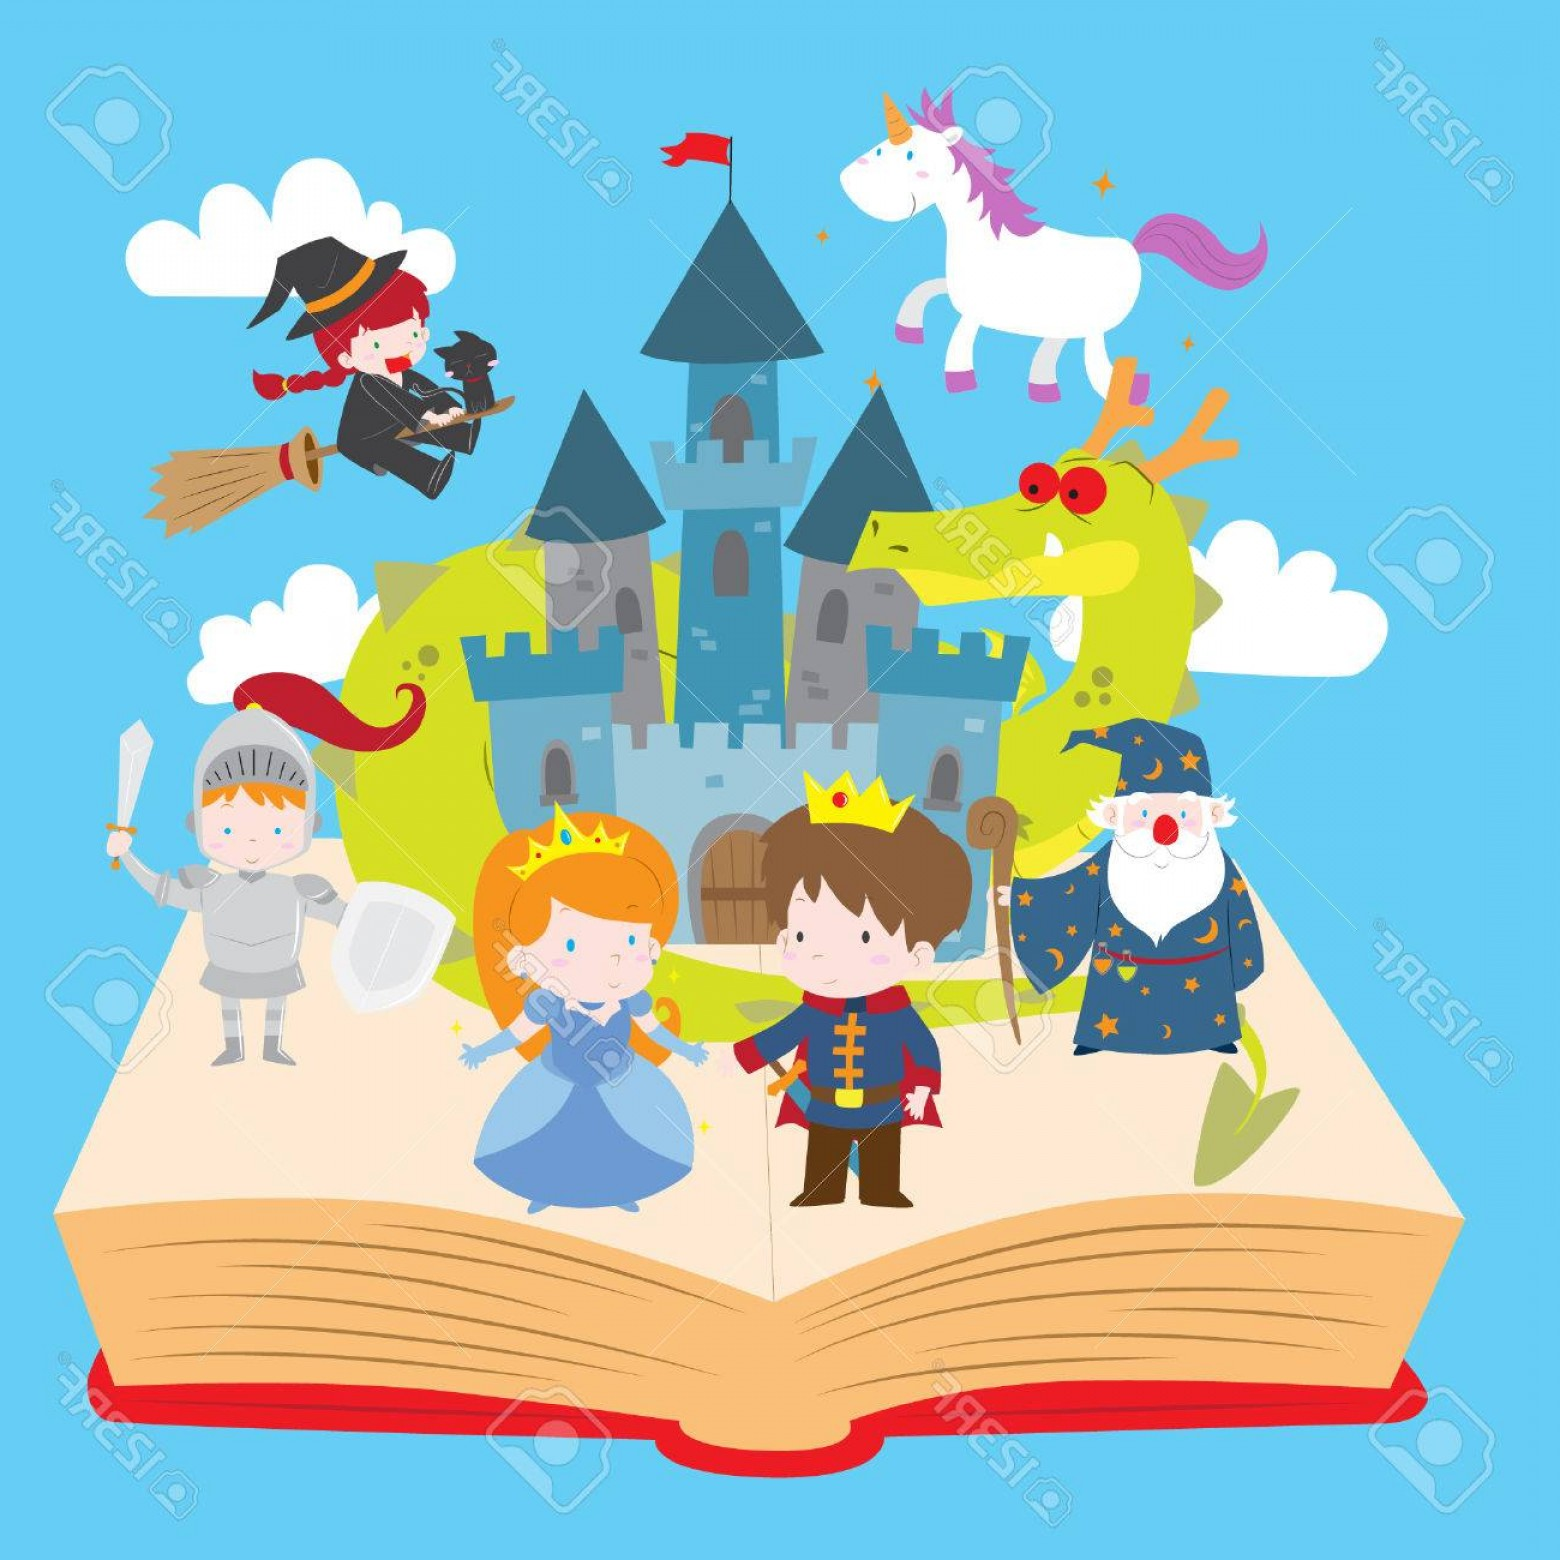 1560x1560 Photostock Vector Cartoon Vector Illustration Of Cute Magical